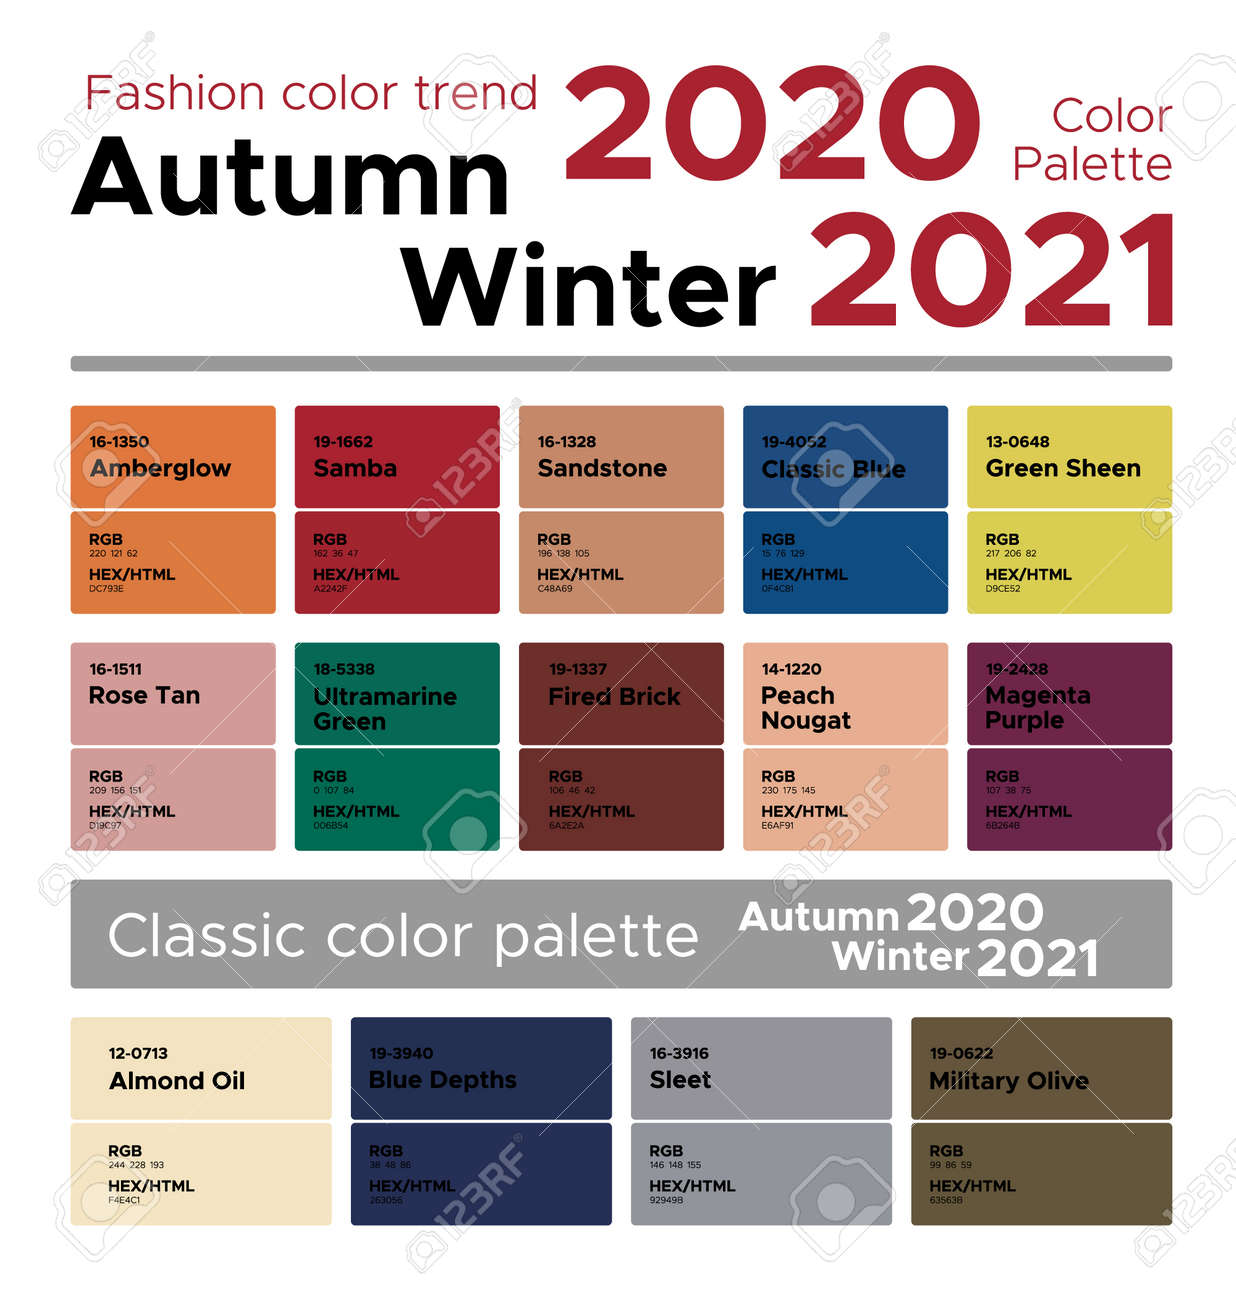 Fashion Color Trend Autumn Winter 2020 2021 Palette Fashion Royalty Free Cliparts Vectors And Stock Illustration Image 141345636